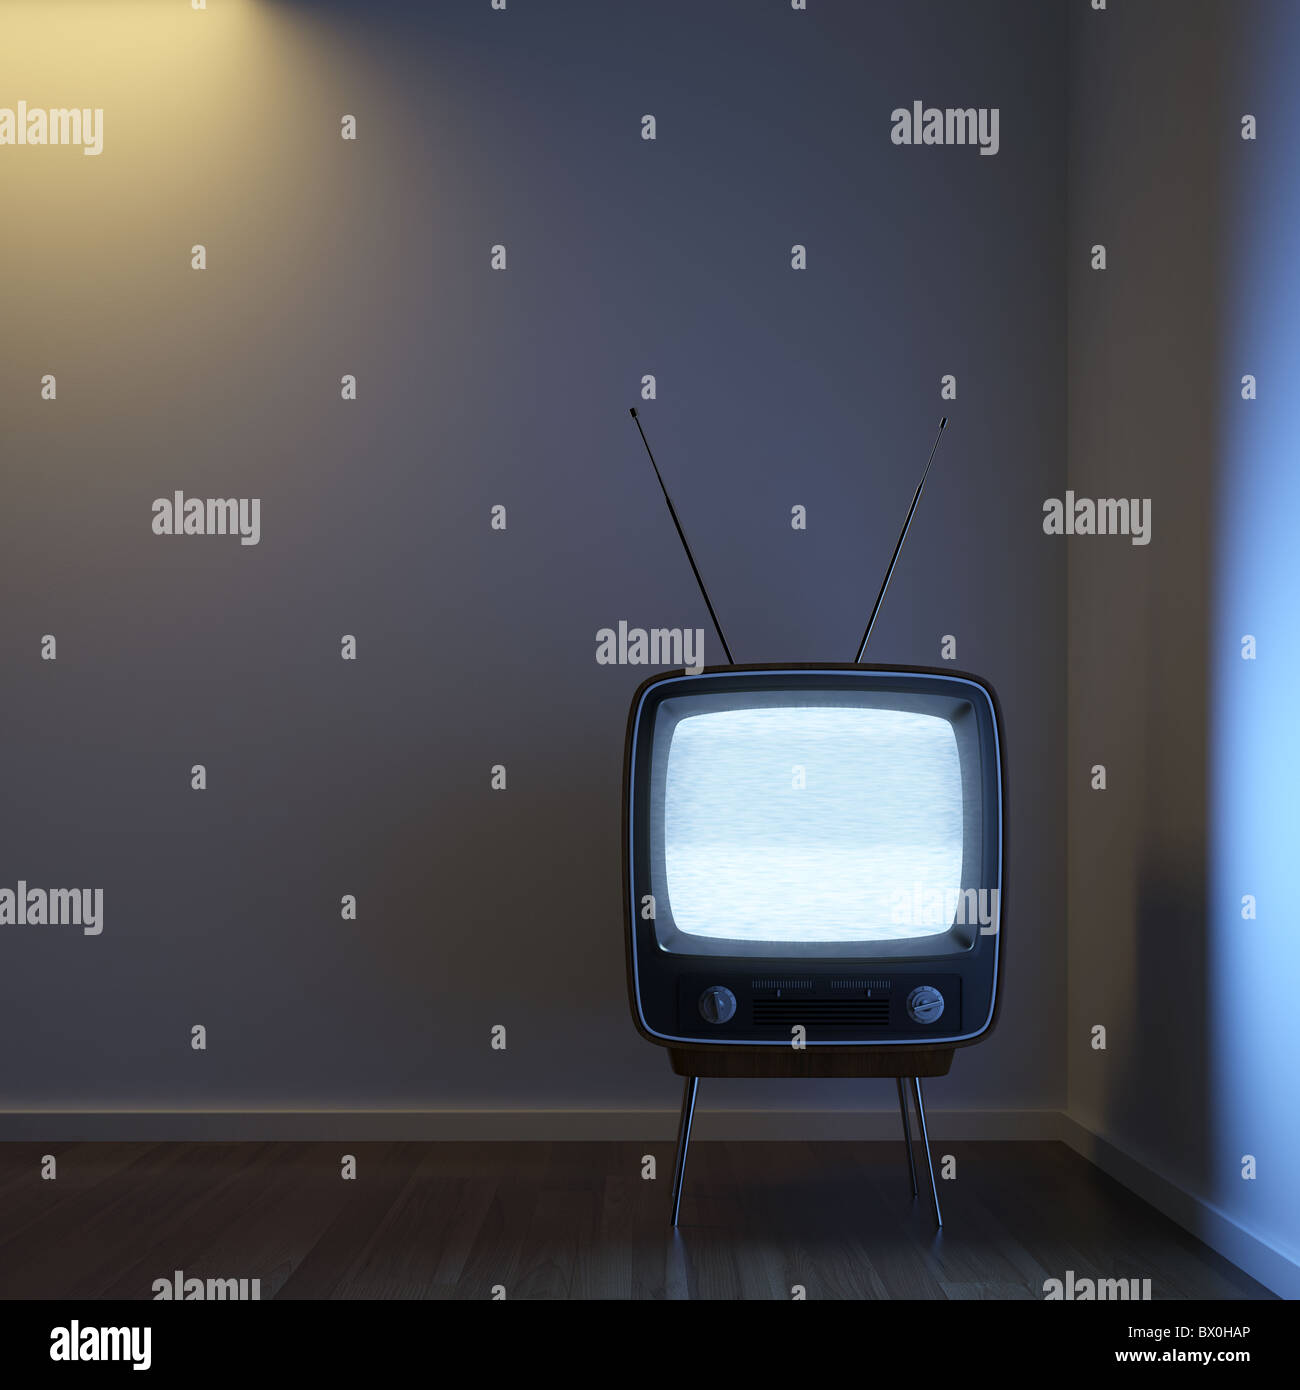 a single retro TV in a corner room showing signal noise with dramatic lighting setup to emphasize the concept of - Stock Image